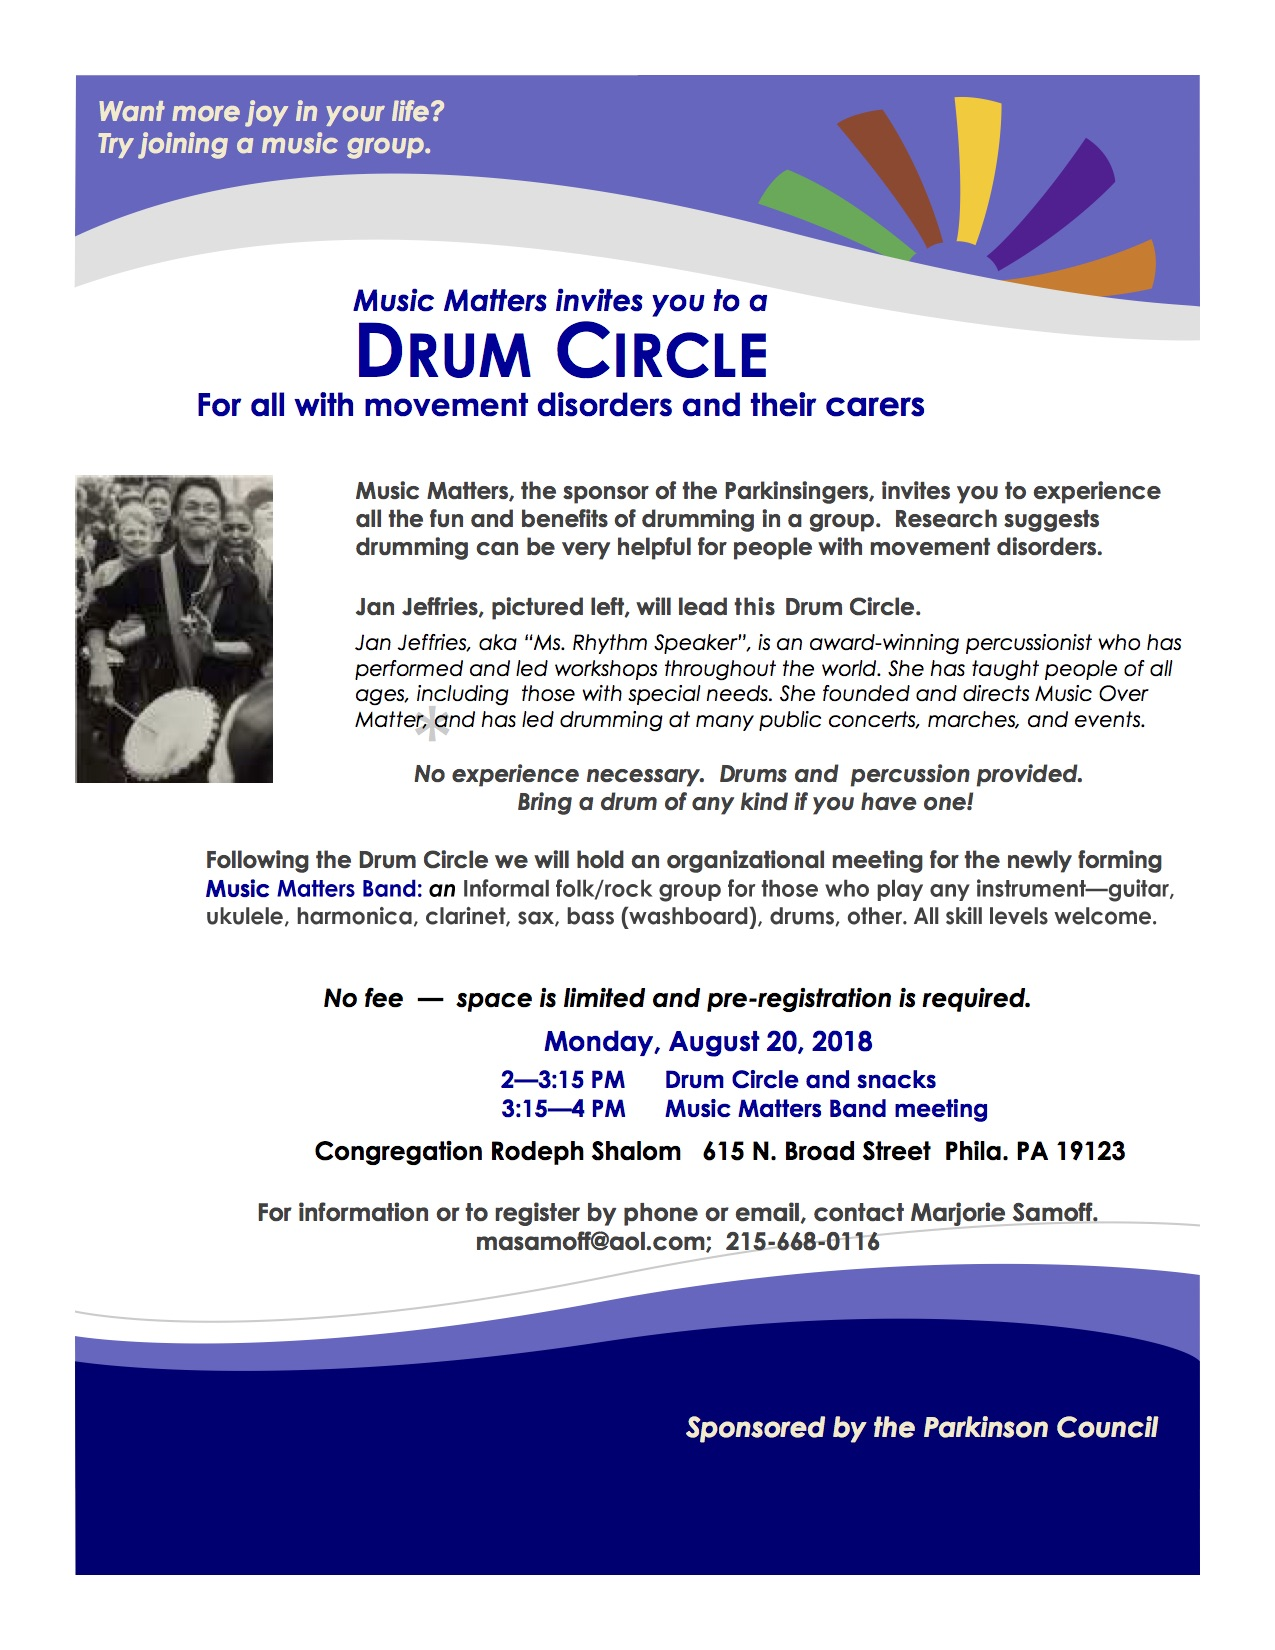 Drum Circle and band launch invite 3 copy.jpg